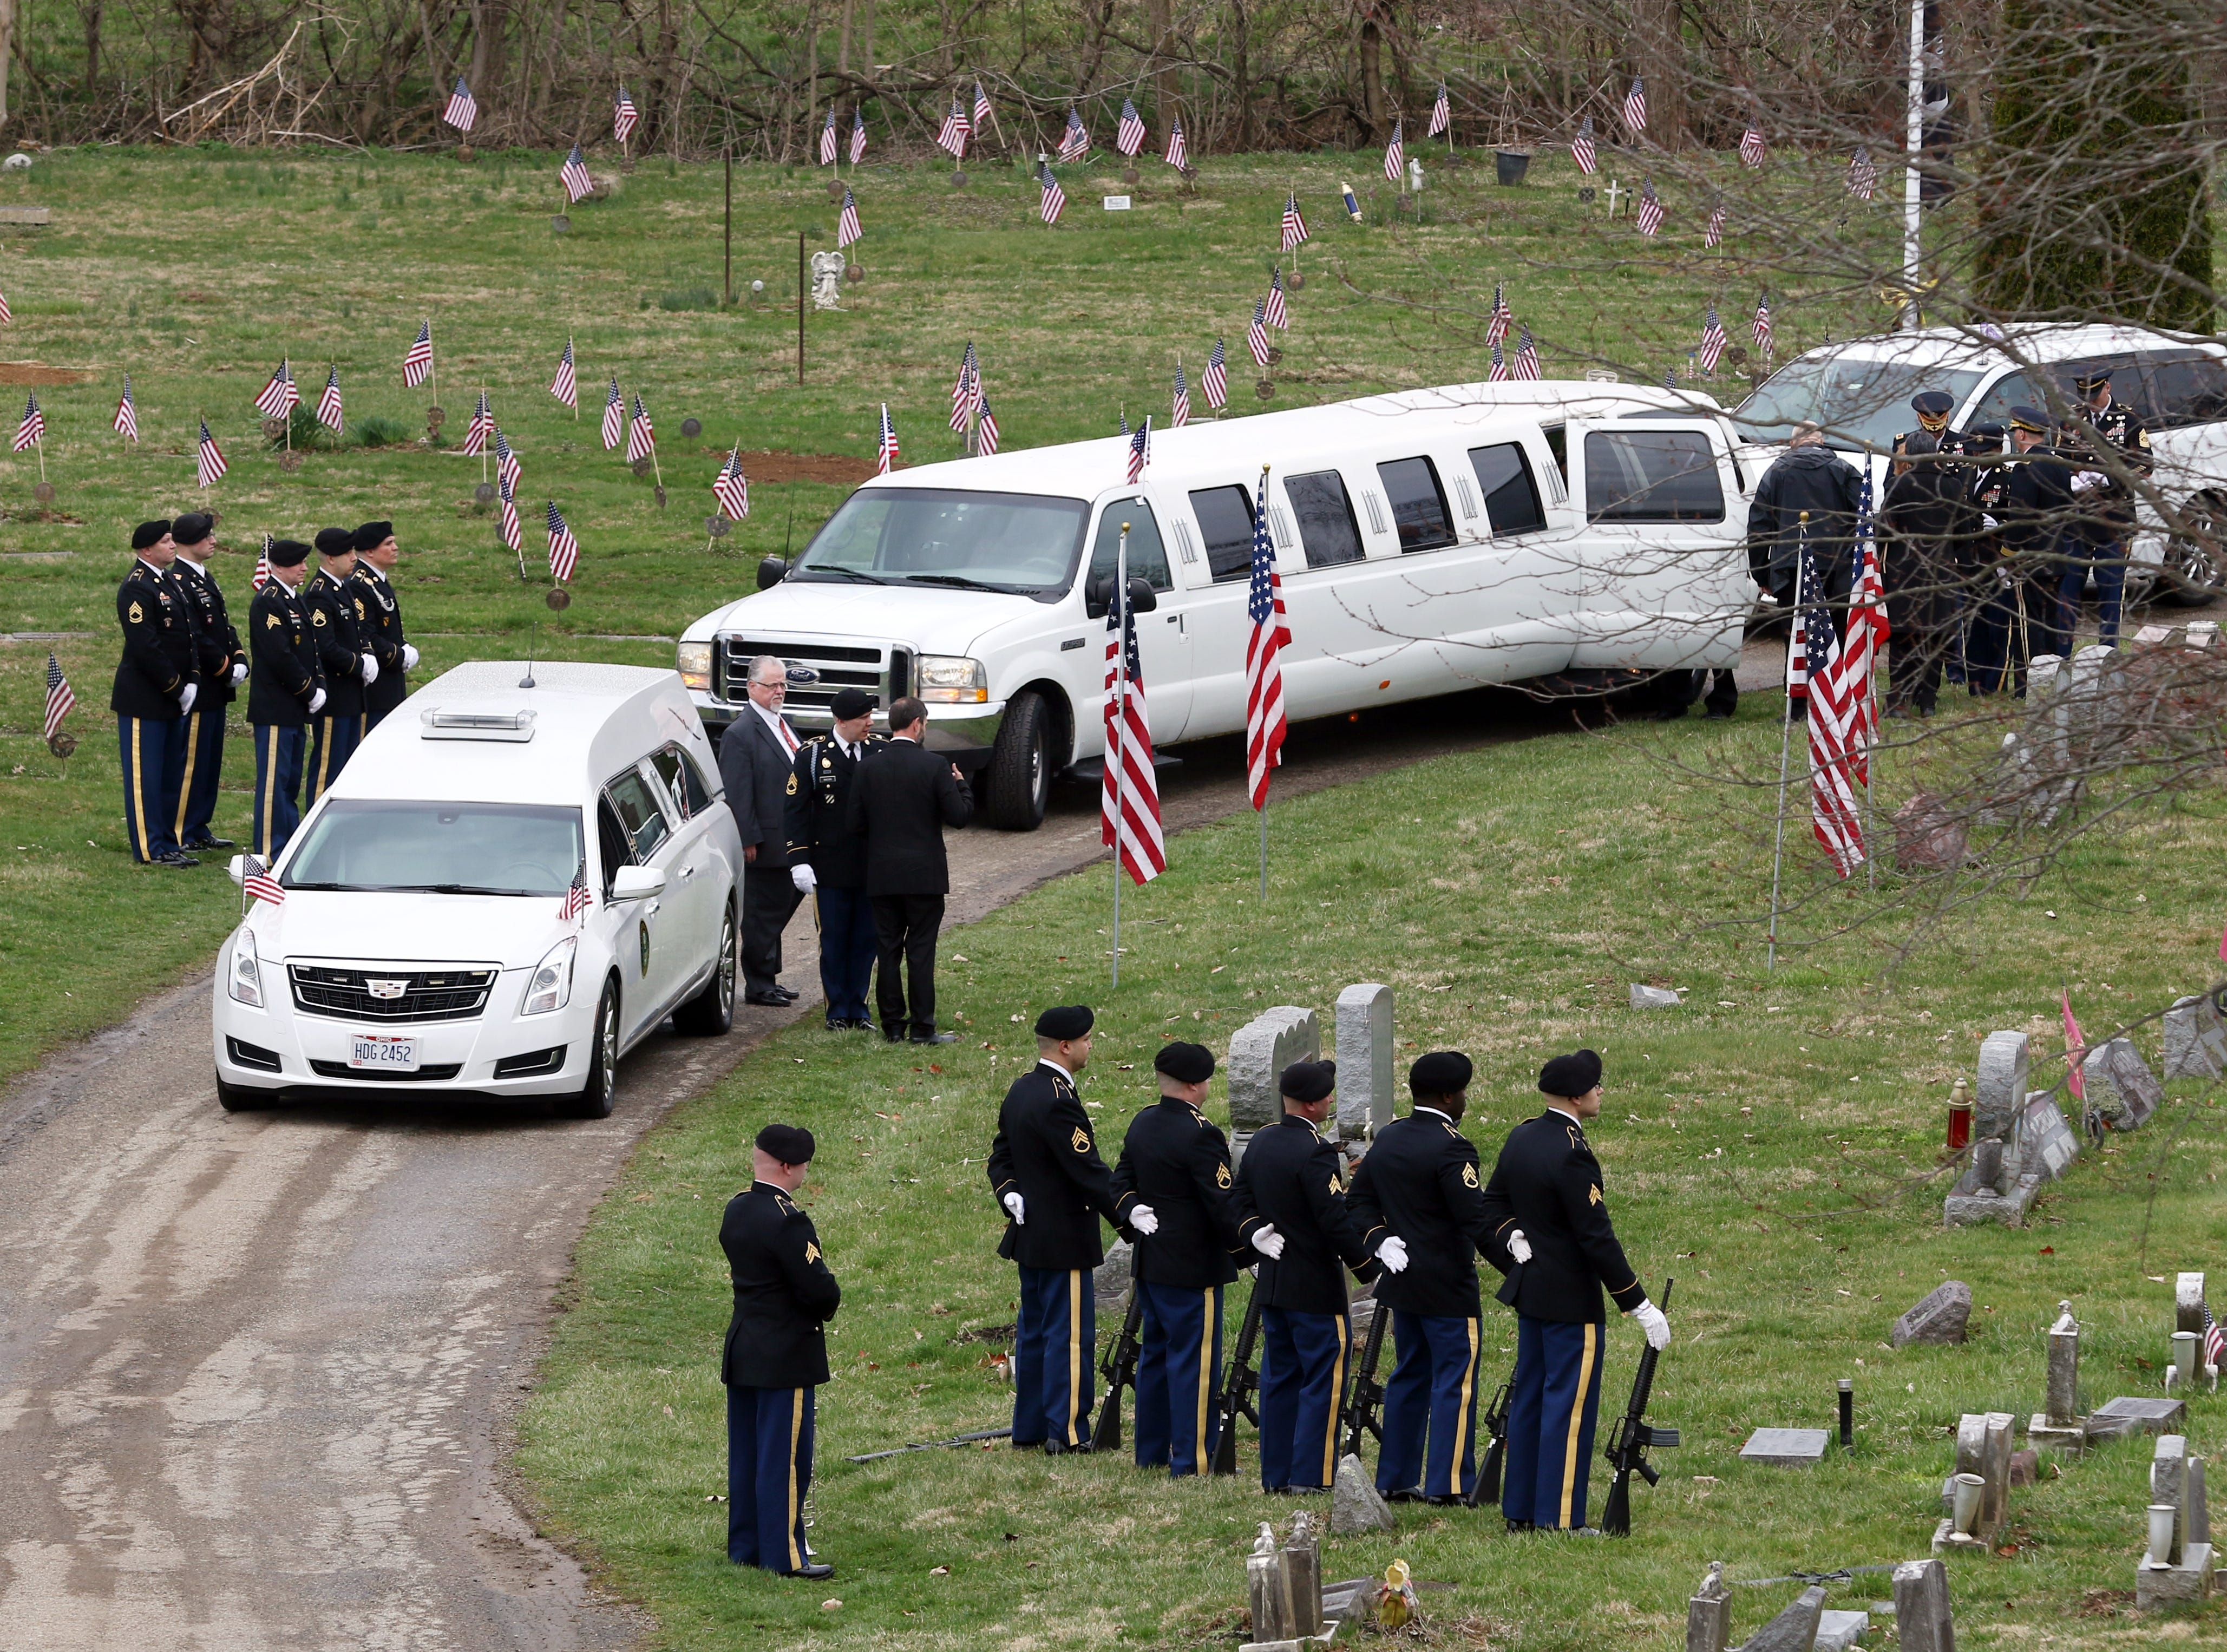 U.S. Army Sgt. Joseph Collette was laid to rest at Maple Grove Cemetary in Lancaster on Friday.